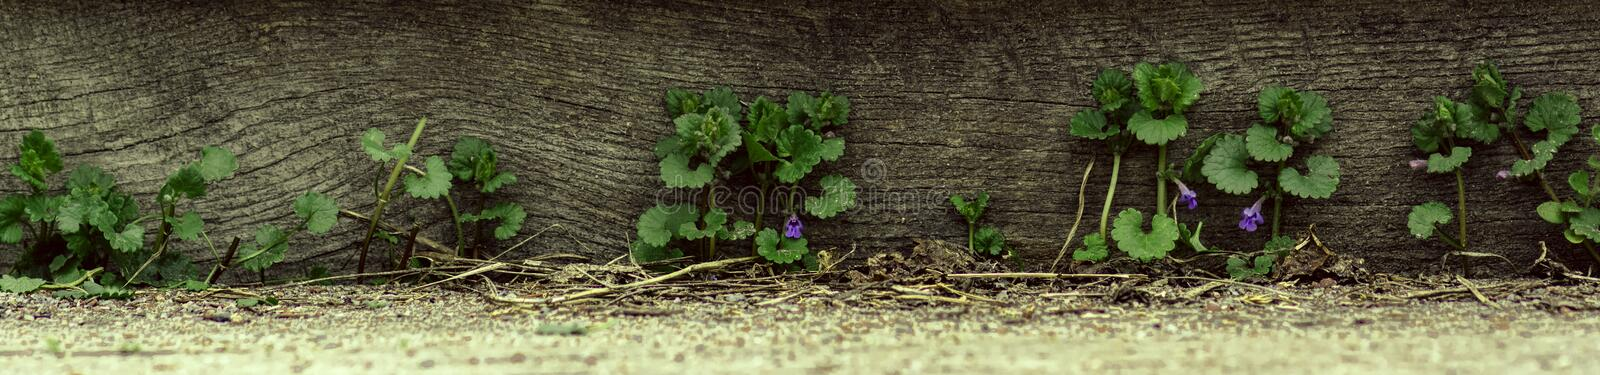 Panorama grass and wildflowers on wooden background royalty free stock photos